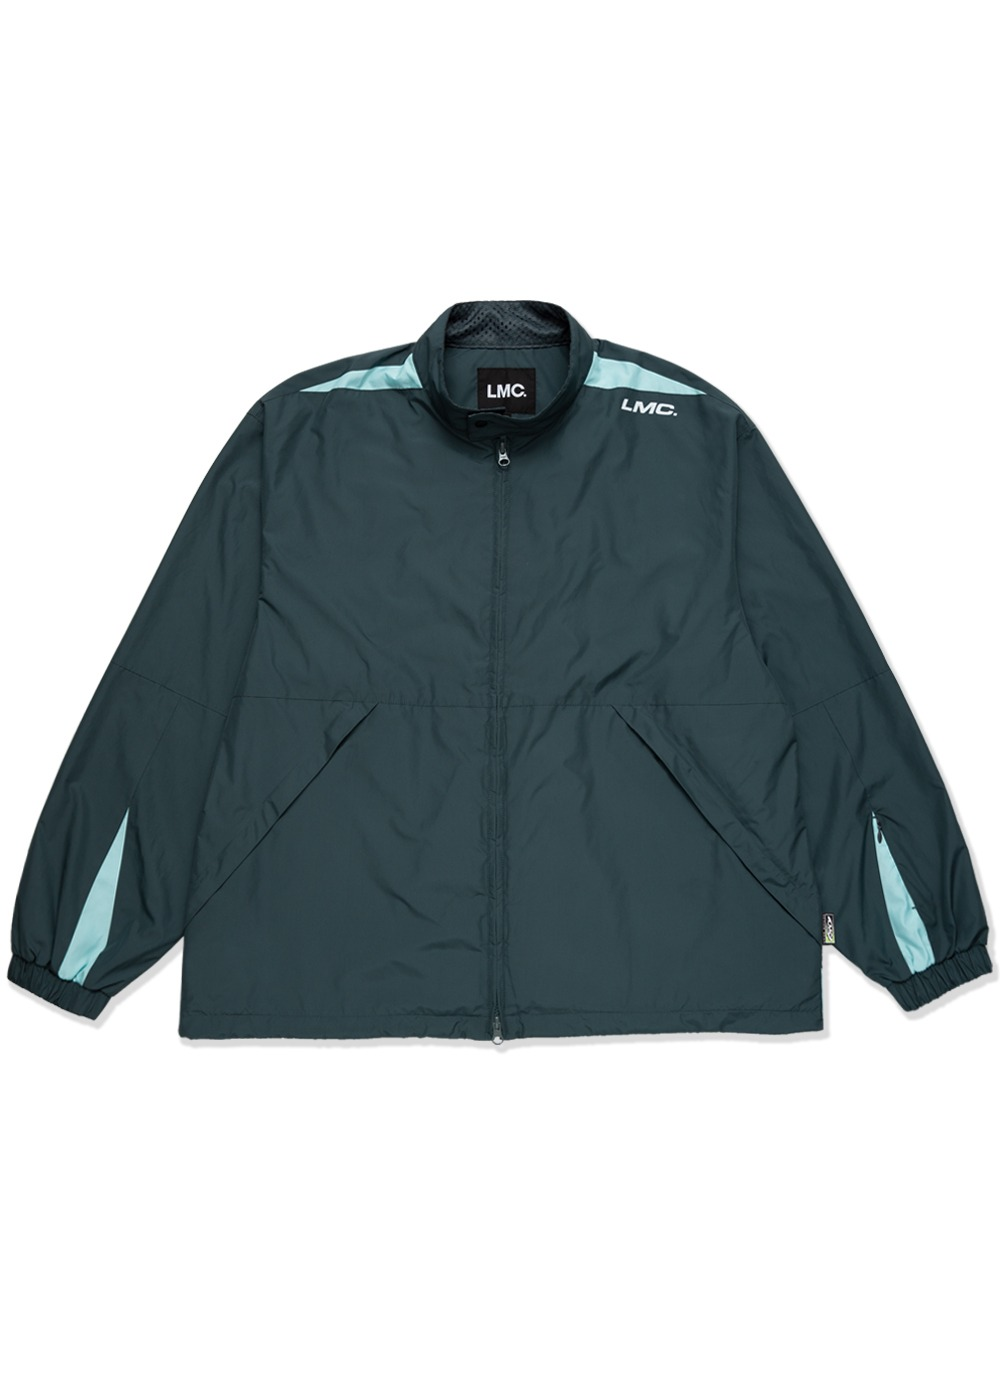 LMC BMD TRACK JACKET teal